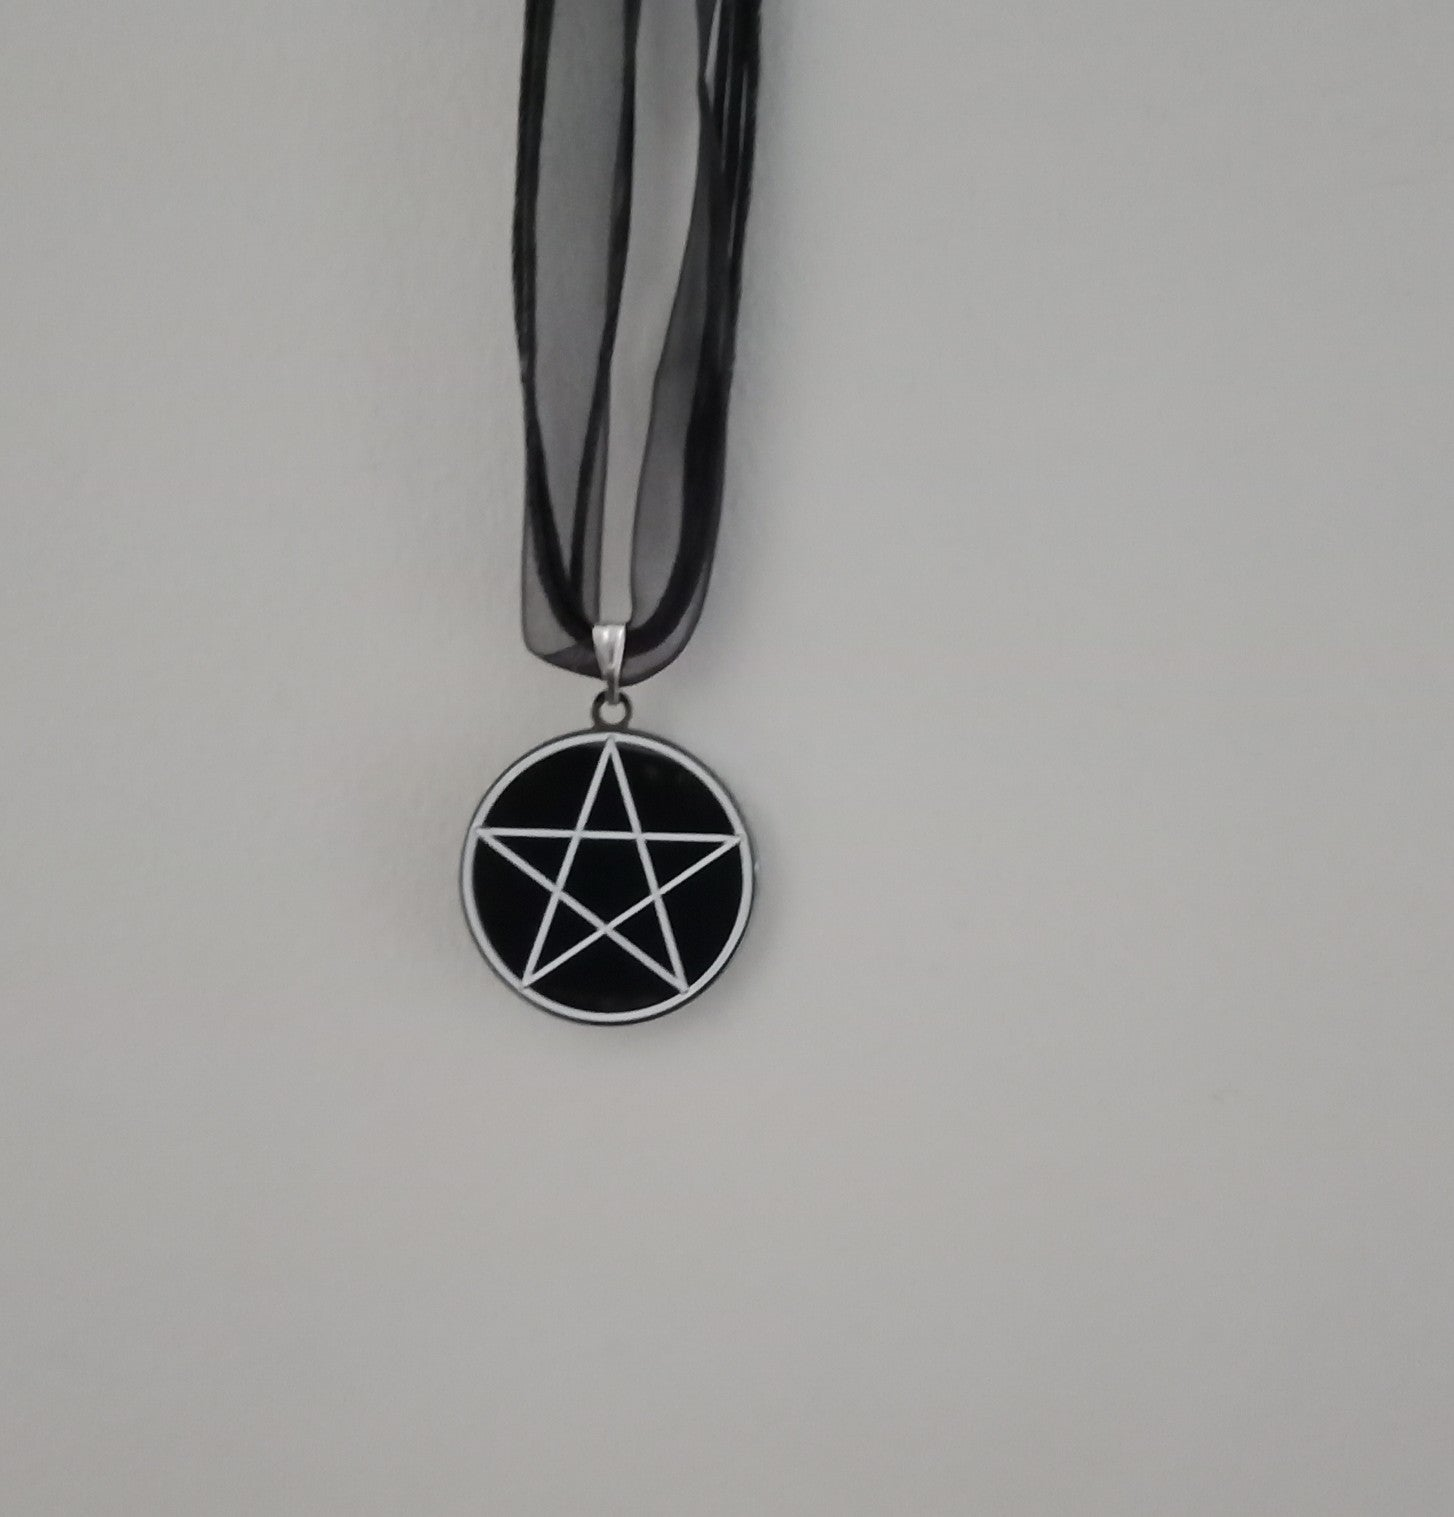 Pentagram organza ribbon necklace